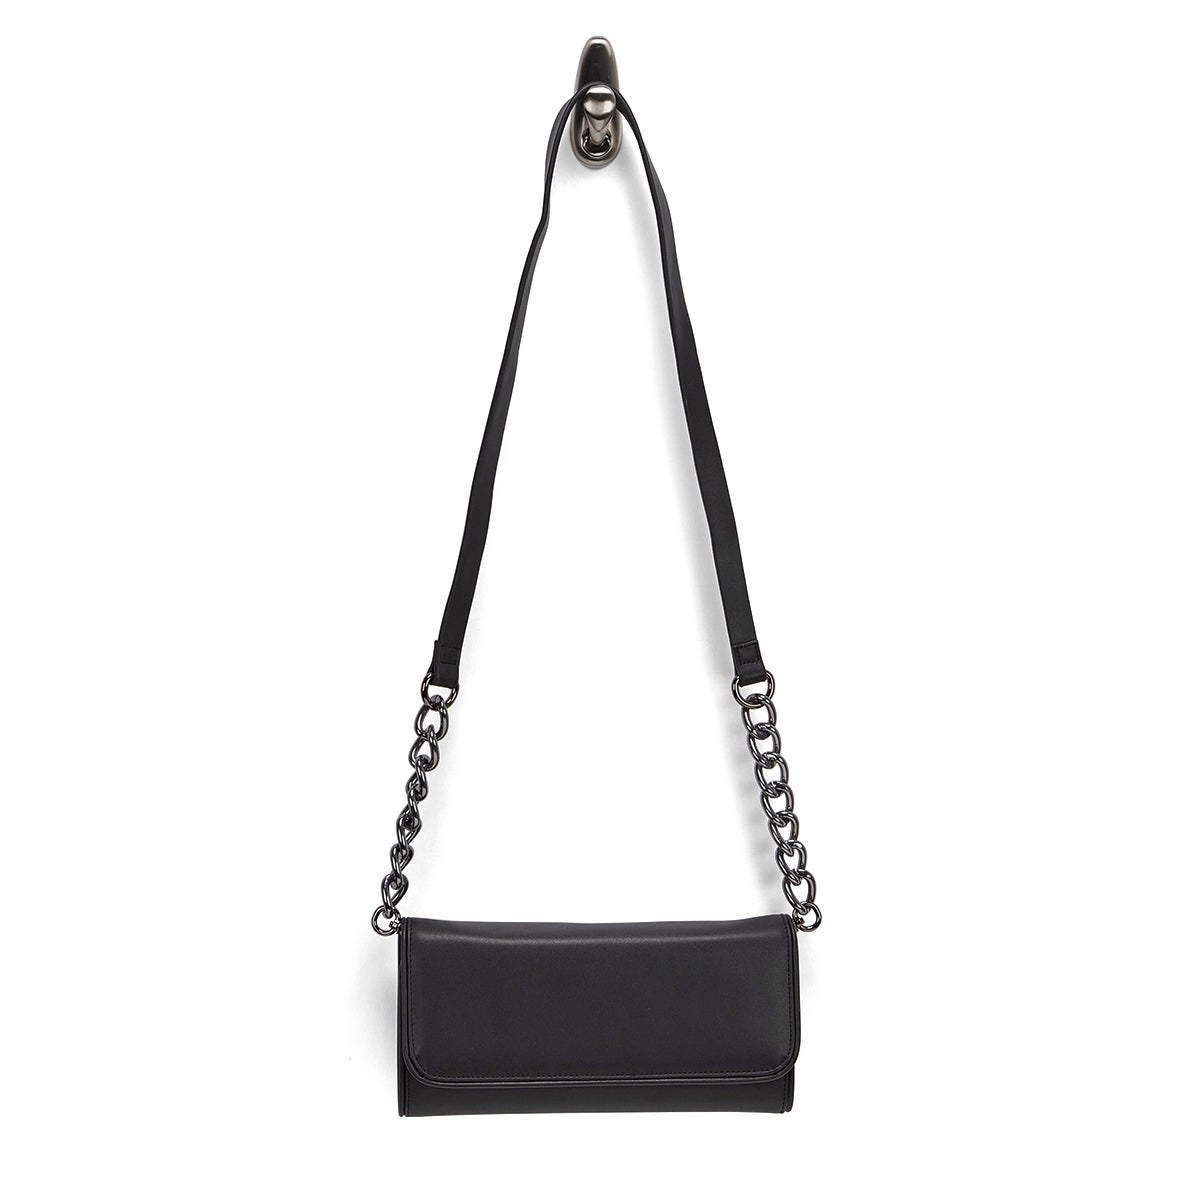 Lds Mattie blk envelope cross body bag